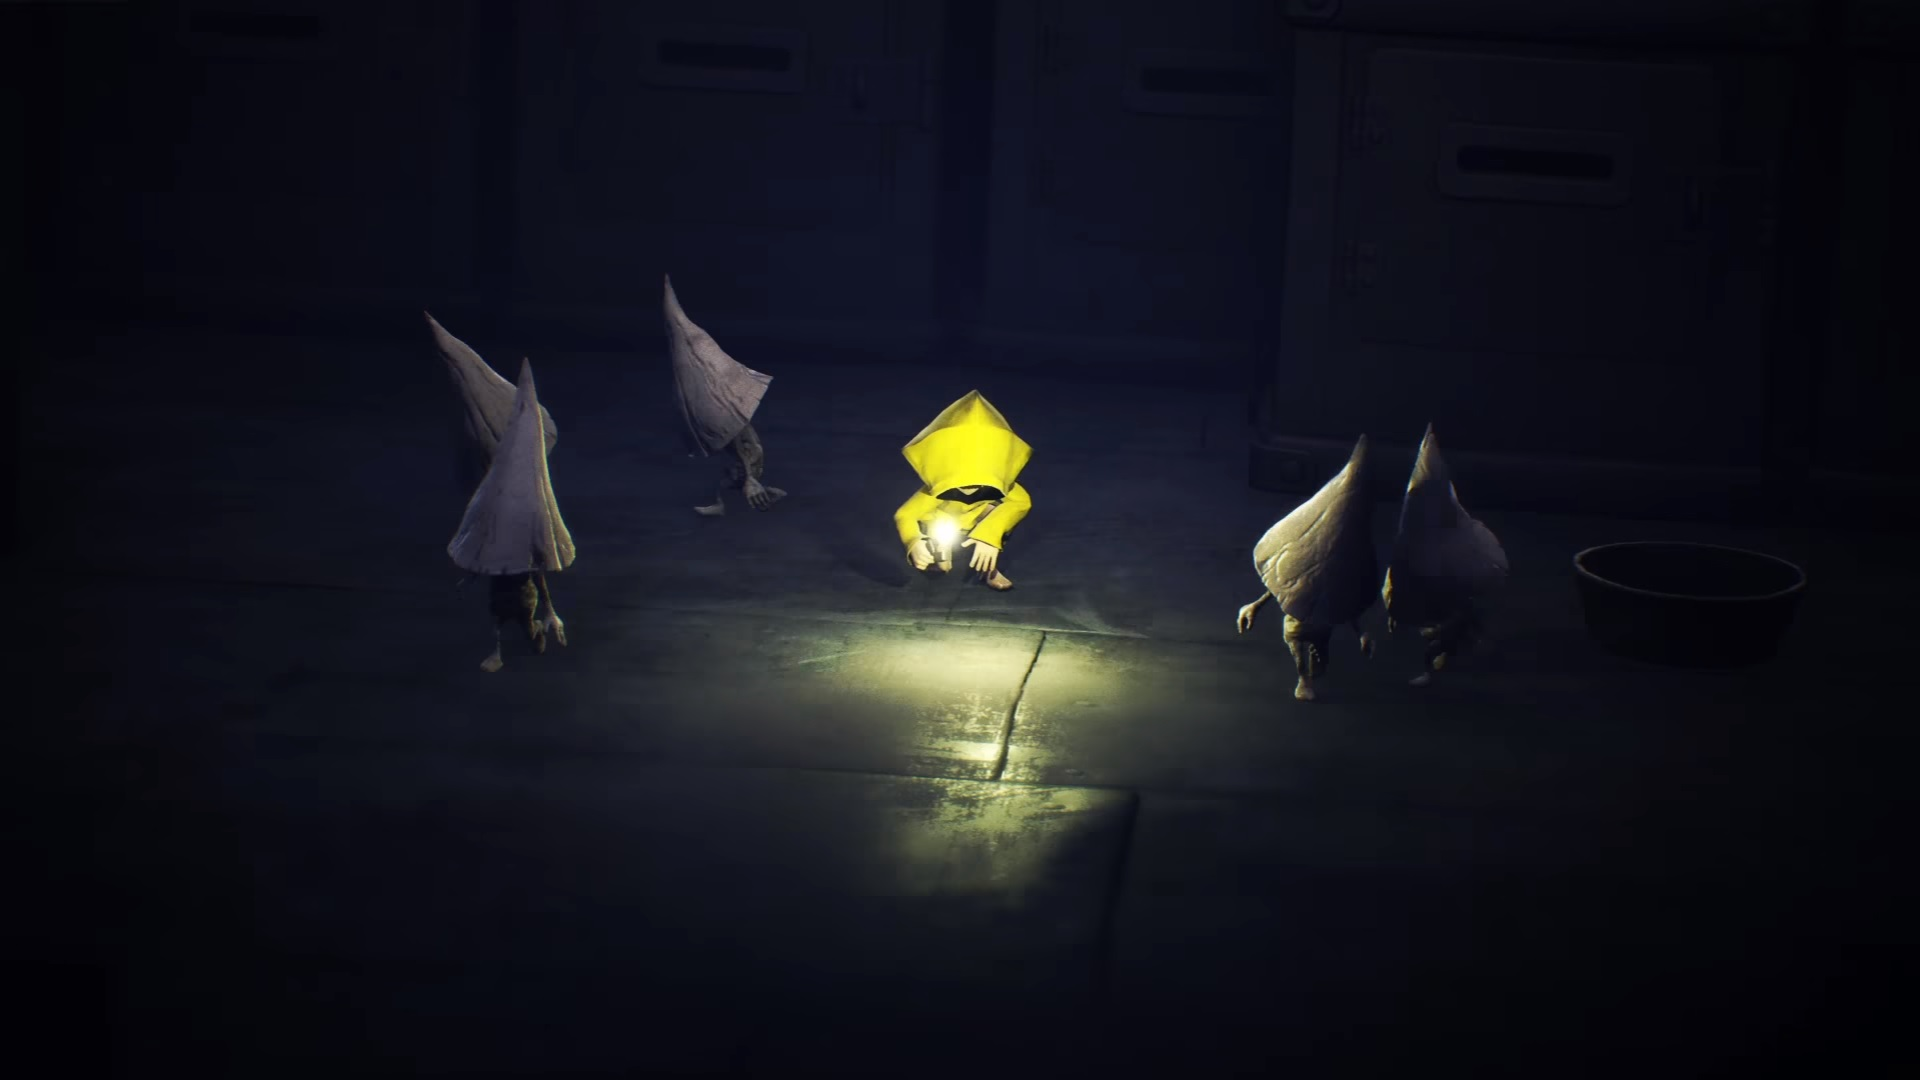 During the Little Nightmares ending, several of the Nomes watch Six leave The Maw.